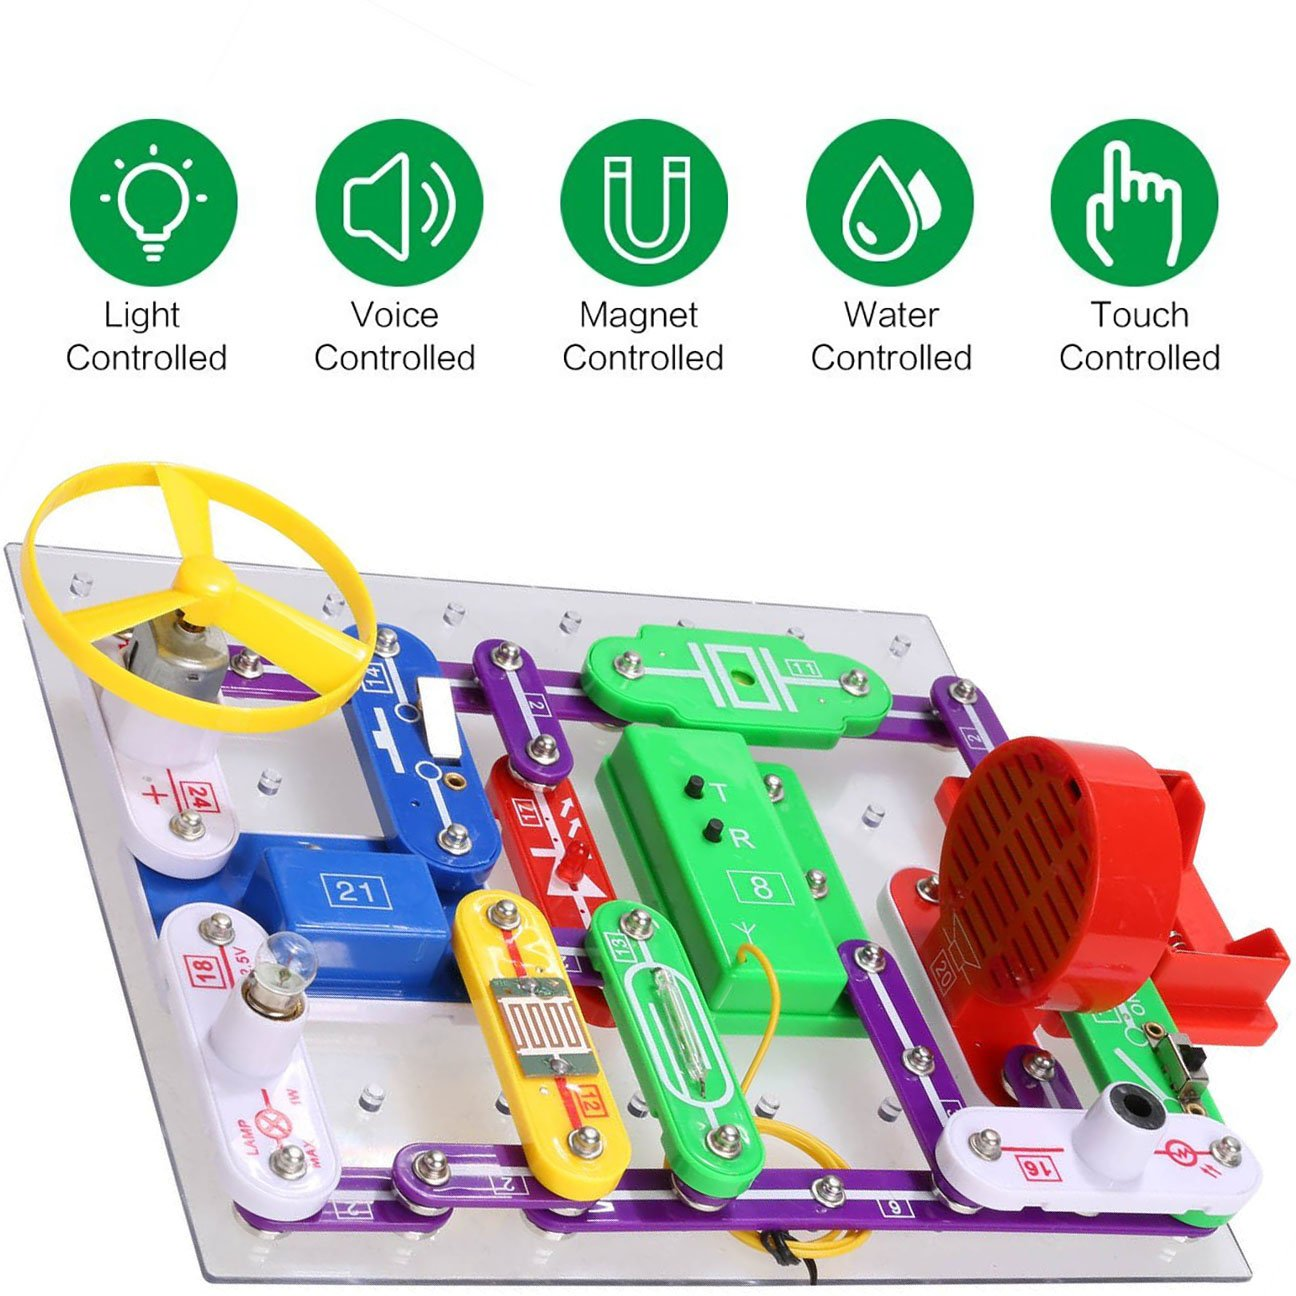 Ezlink 335 Diy Circuit Experimentsscience Kitselectronic Discovery Com Snap Circuits Green Alternative Energy Kit Toy For Kidskids Circuitskids Kitscience Experiments Kids